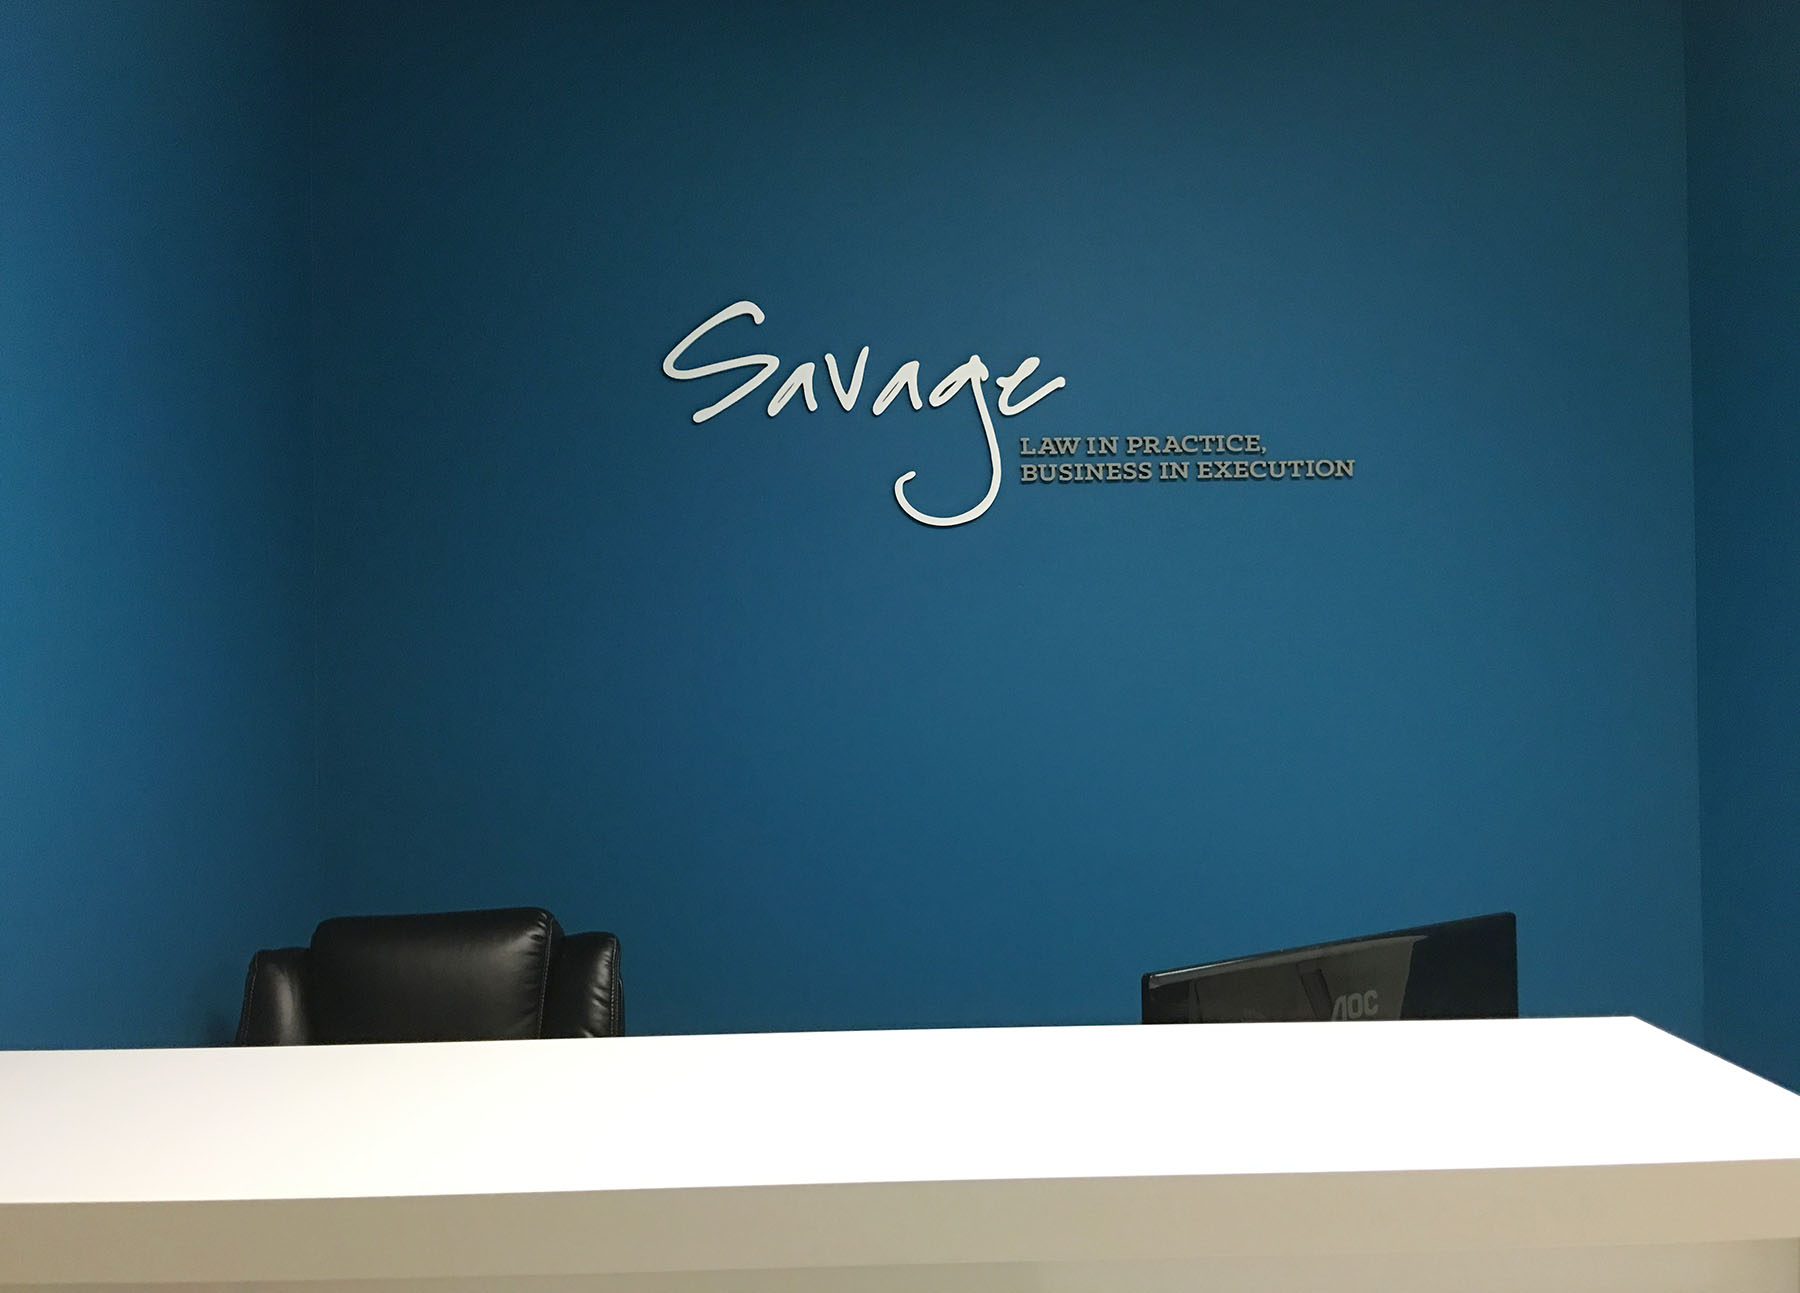 Dimensional Logo: Painted acrylic, mounted to painted drywall